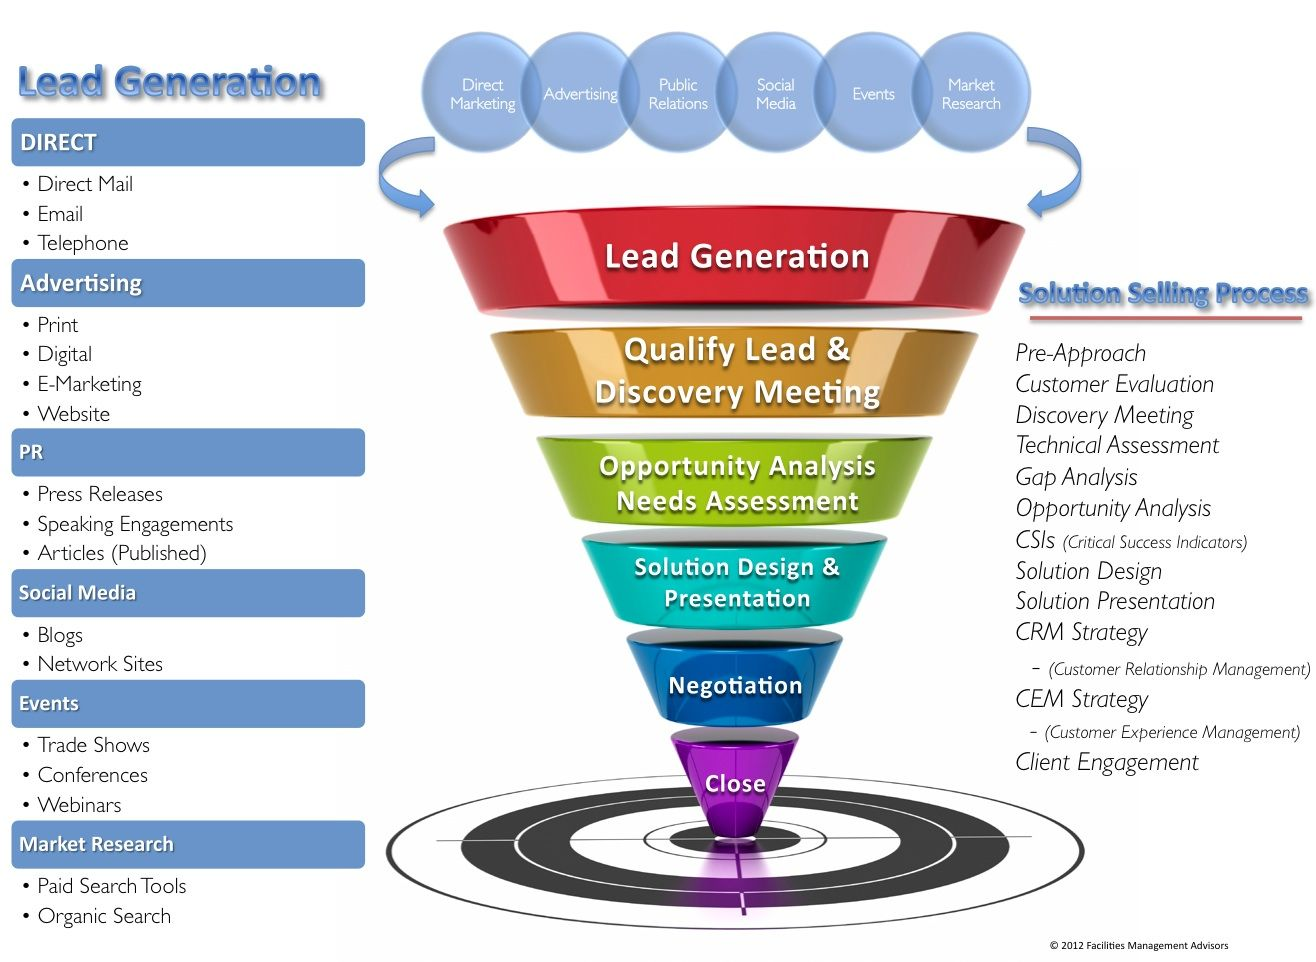 Lead generation facilities management advisors llc the for Lead generation plan template